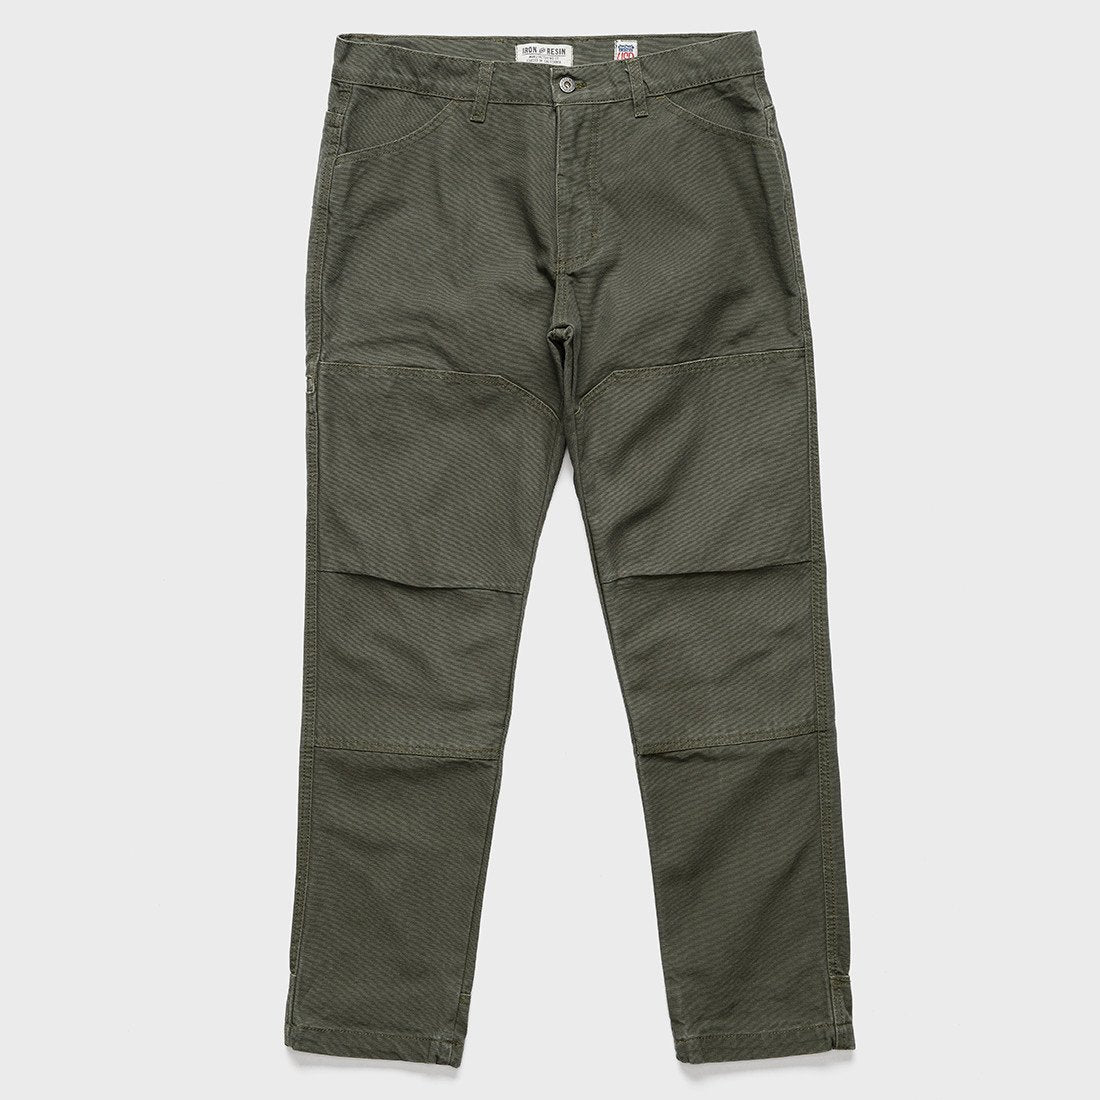 Iron & Resin Union Workpant Olive